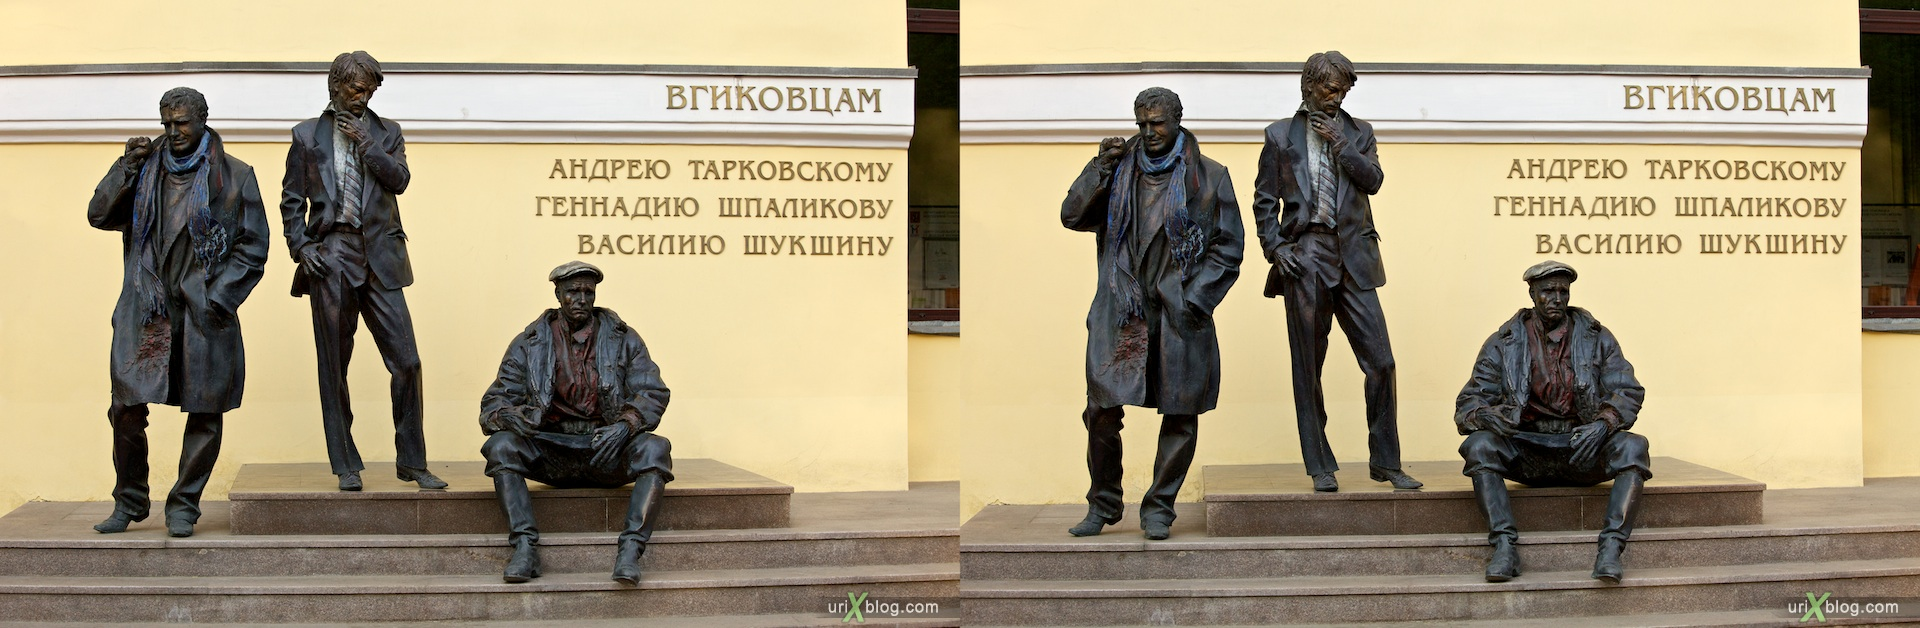 2010 Moscow near the VDNKh Москва около ВДНХ 3D, stereo, cross-eyed, стерео, стереопара